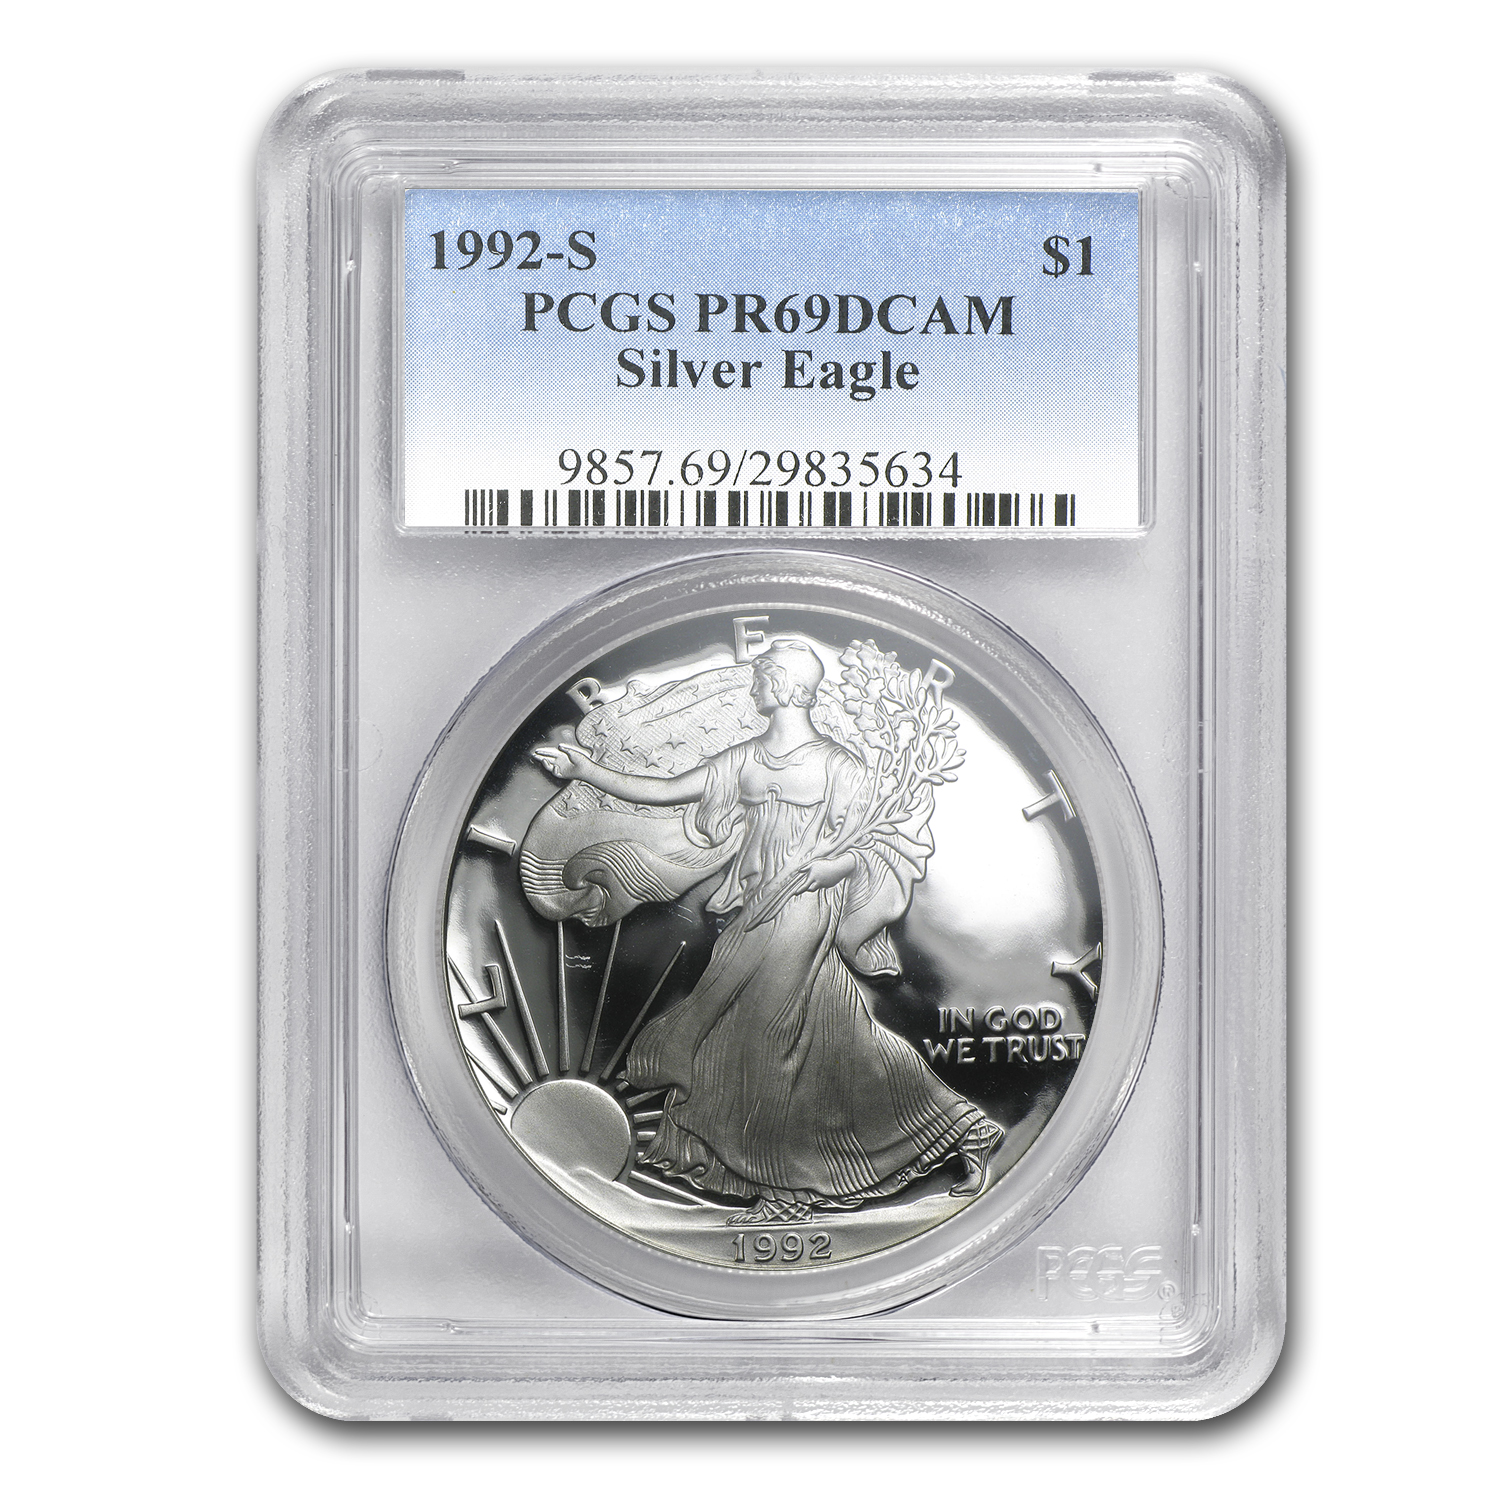 1992-S Proof Silver American Eagle PR-69 PCGS